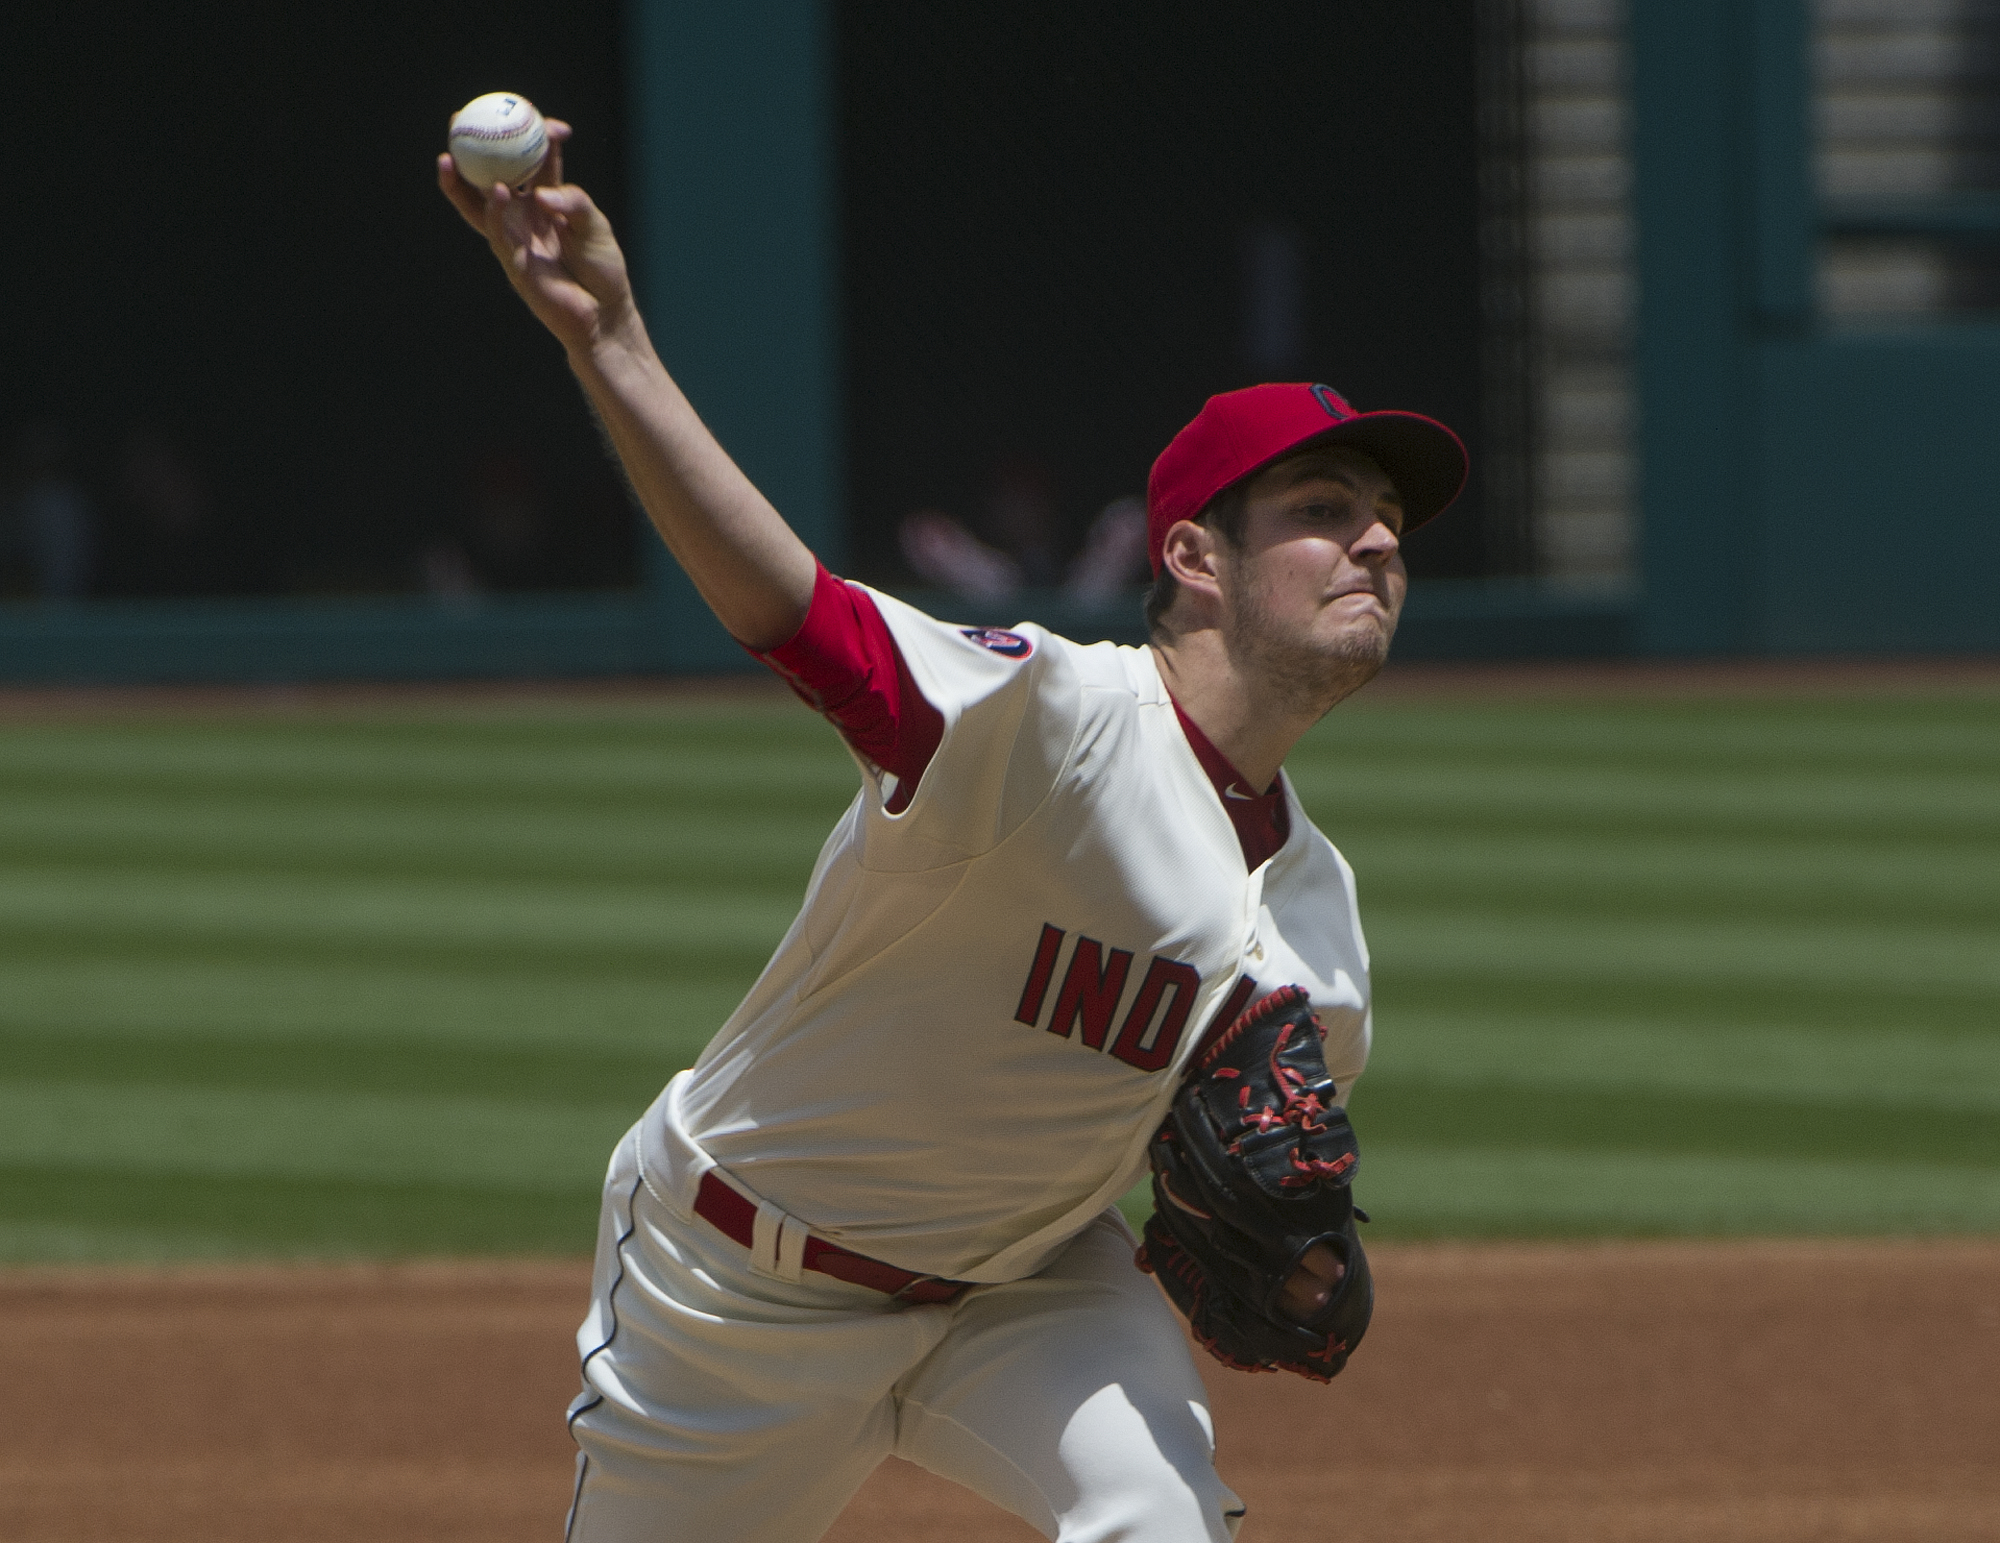 Cleveland indians' Trevor Bauer delivers to Cincinnati Reds' Brandon Phillips during the first inning of a baseball game in Cleveland, Sunday, May 24, 2015. (AP Photo/Phil Long)